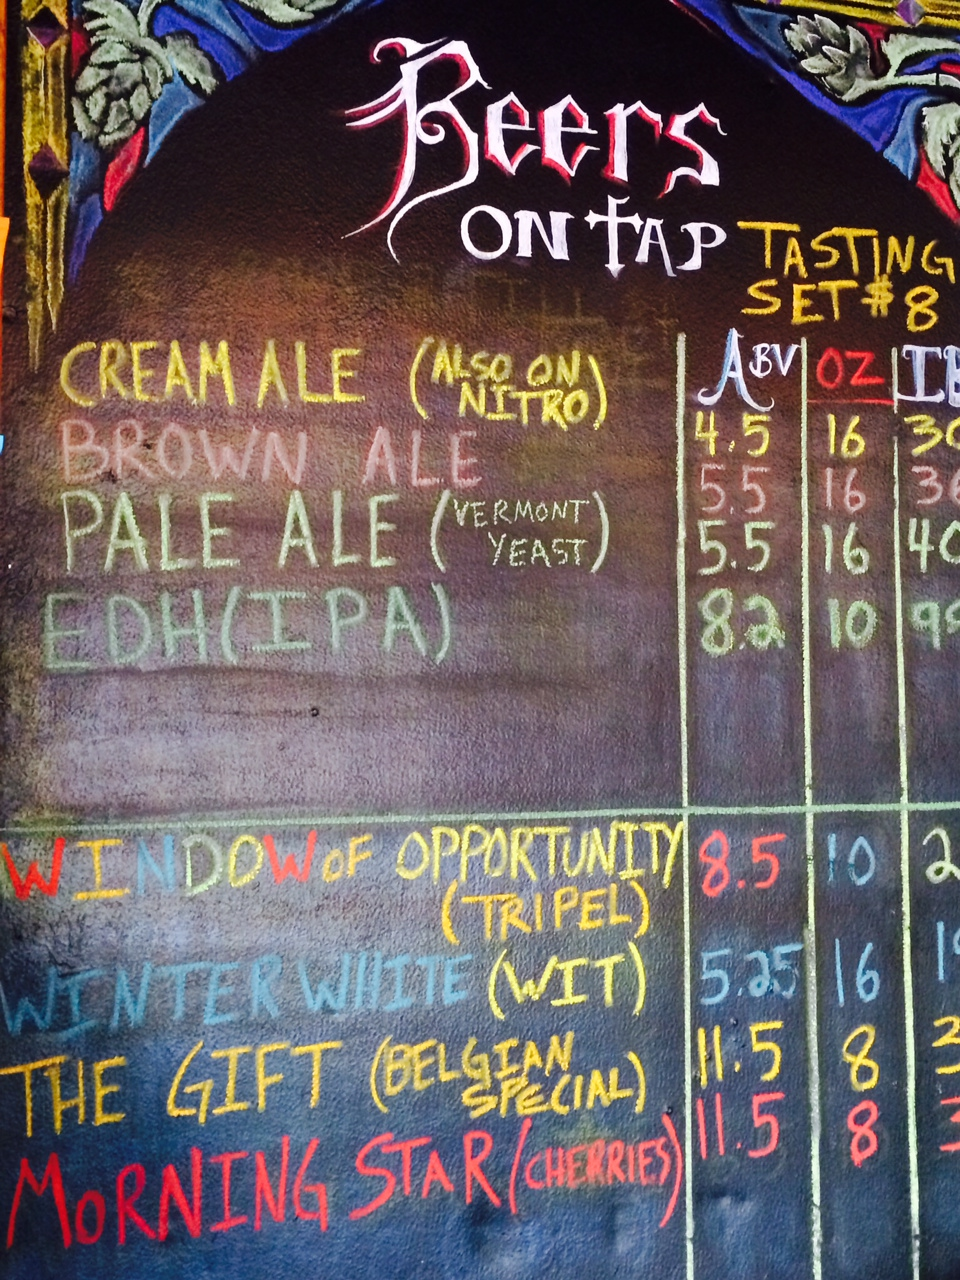 Beer list for the week.